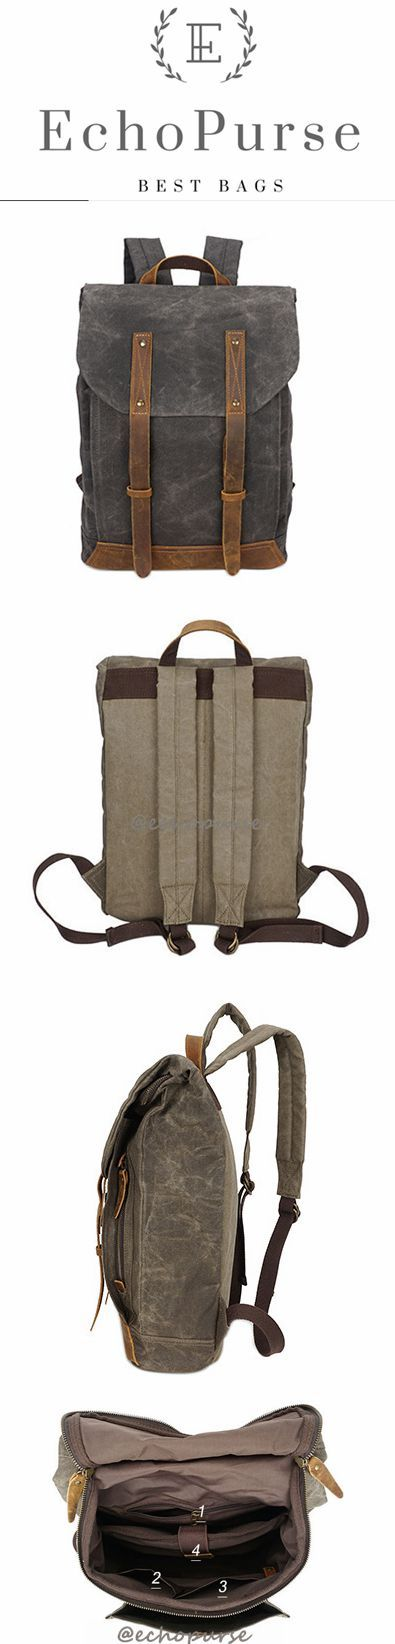 Canvas Backpack, Vintage Waterproof Travel Fashion Bag For Man YD162